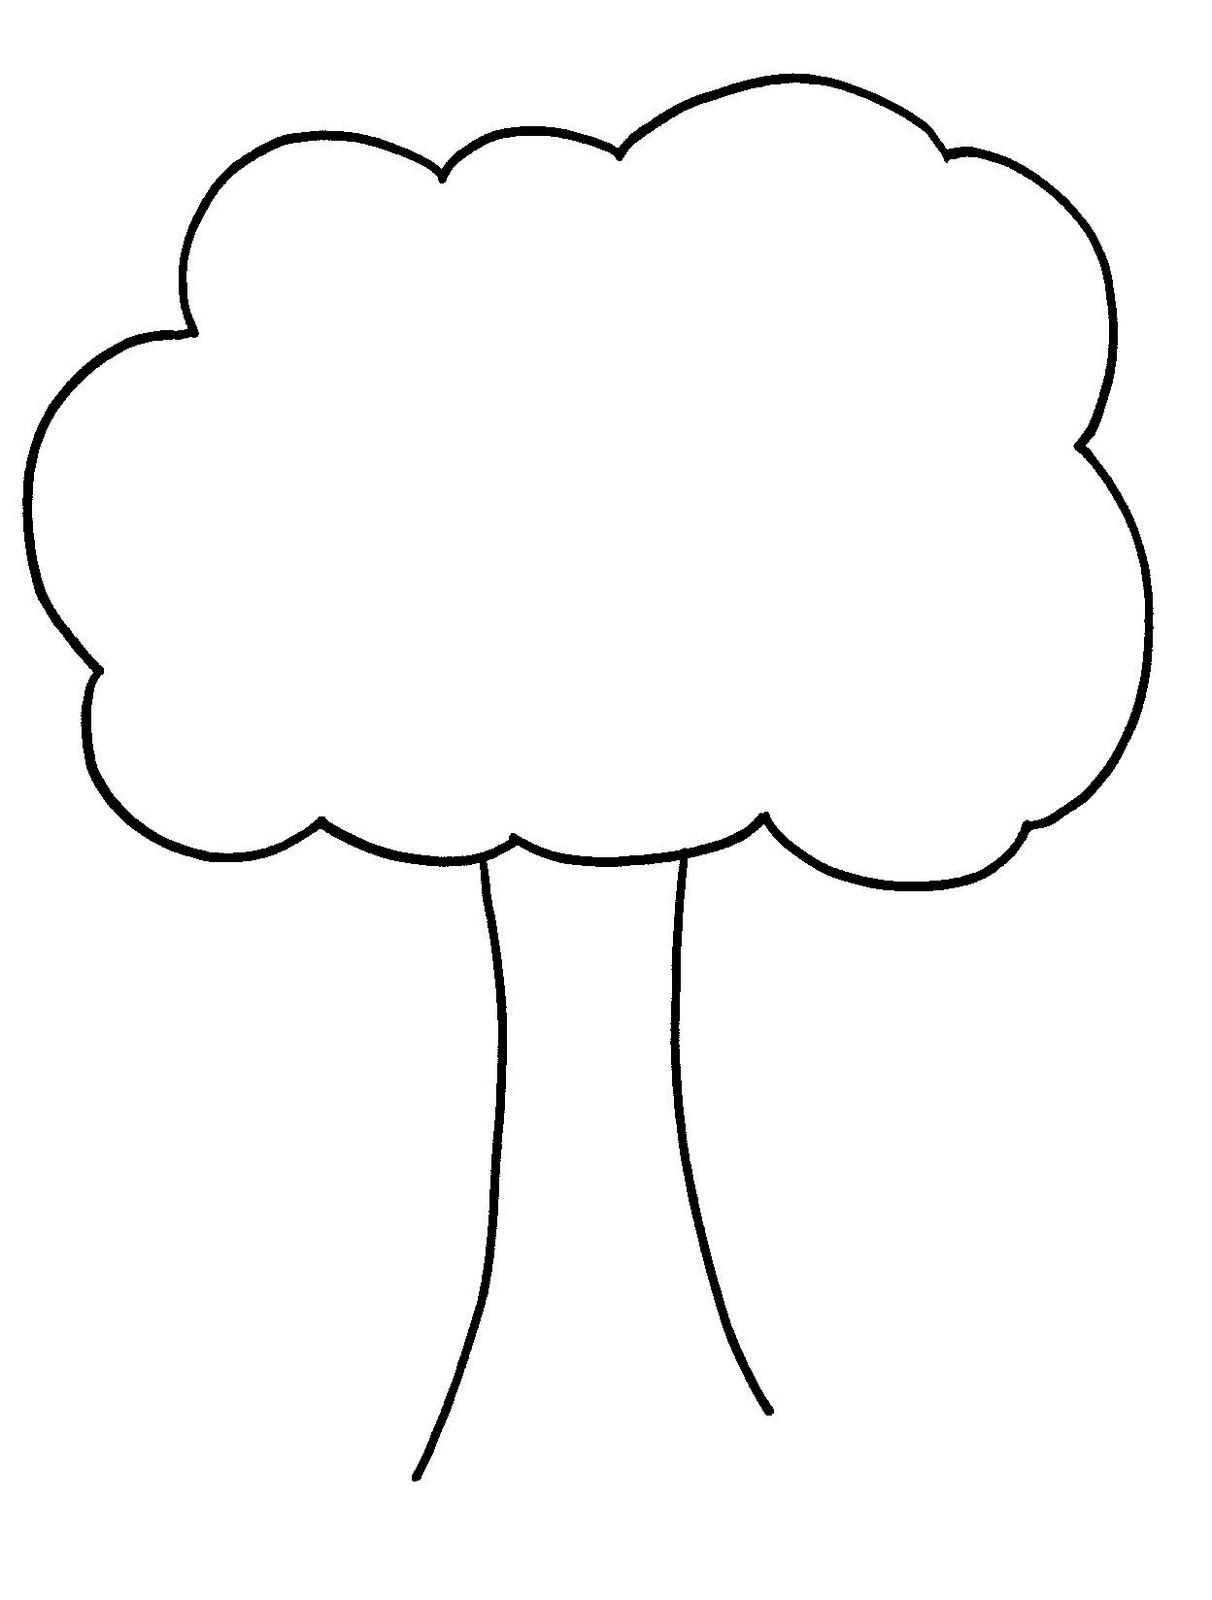 Trees outline. Clip art tree clipart